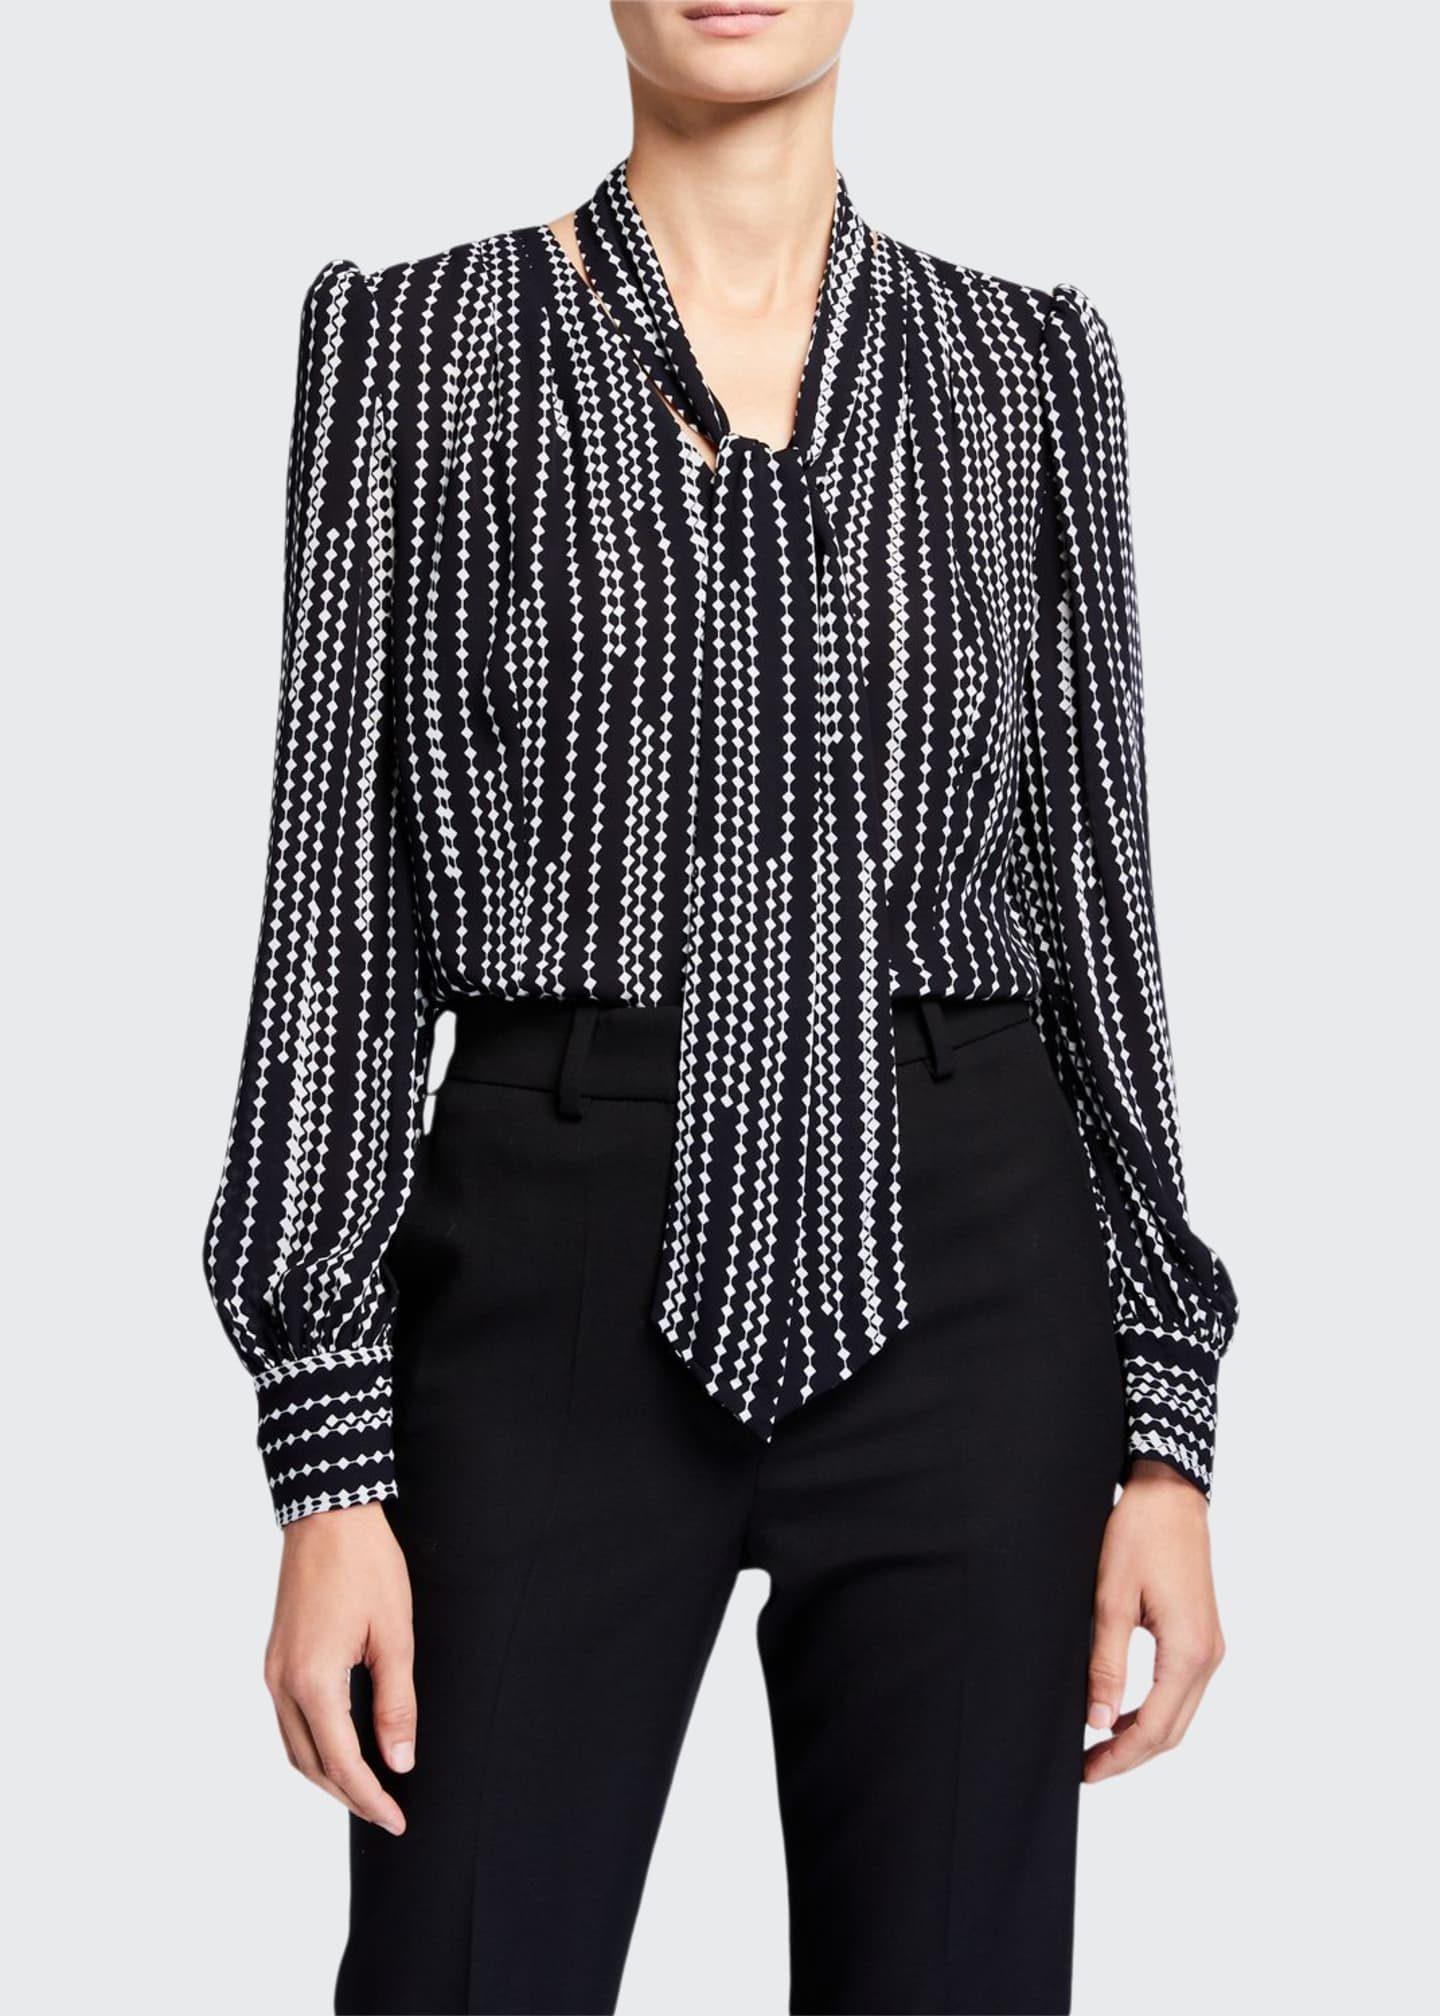 Elie Tahari Percy Printed Tie-Neck Shirt